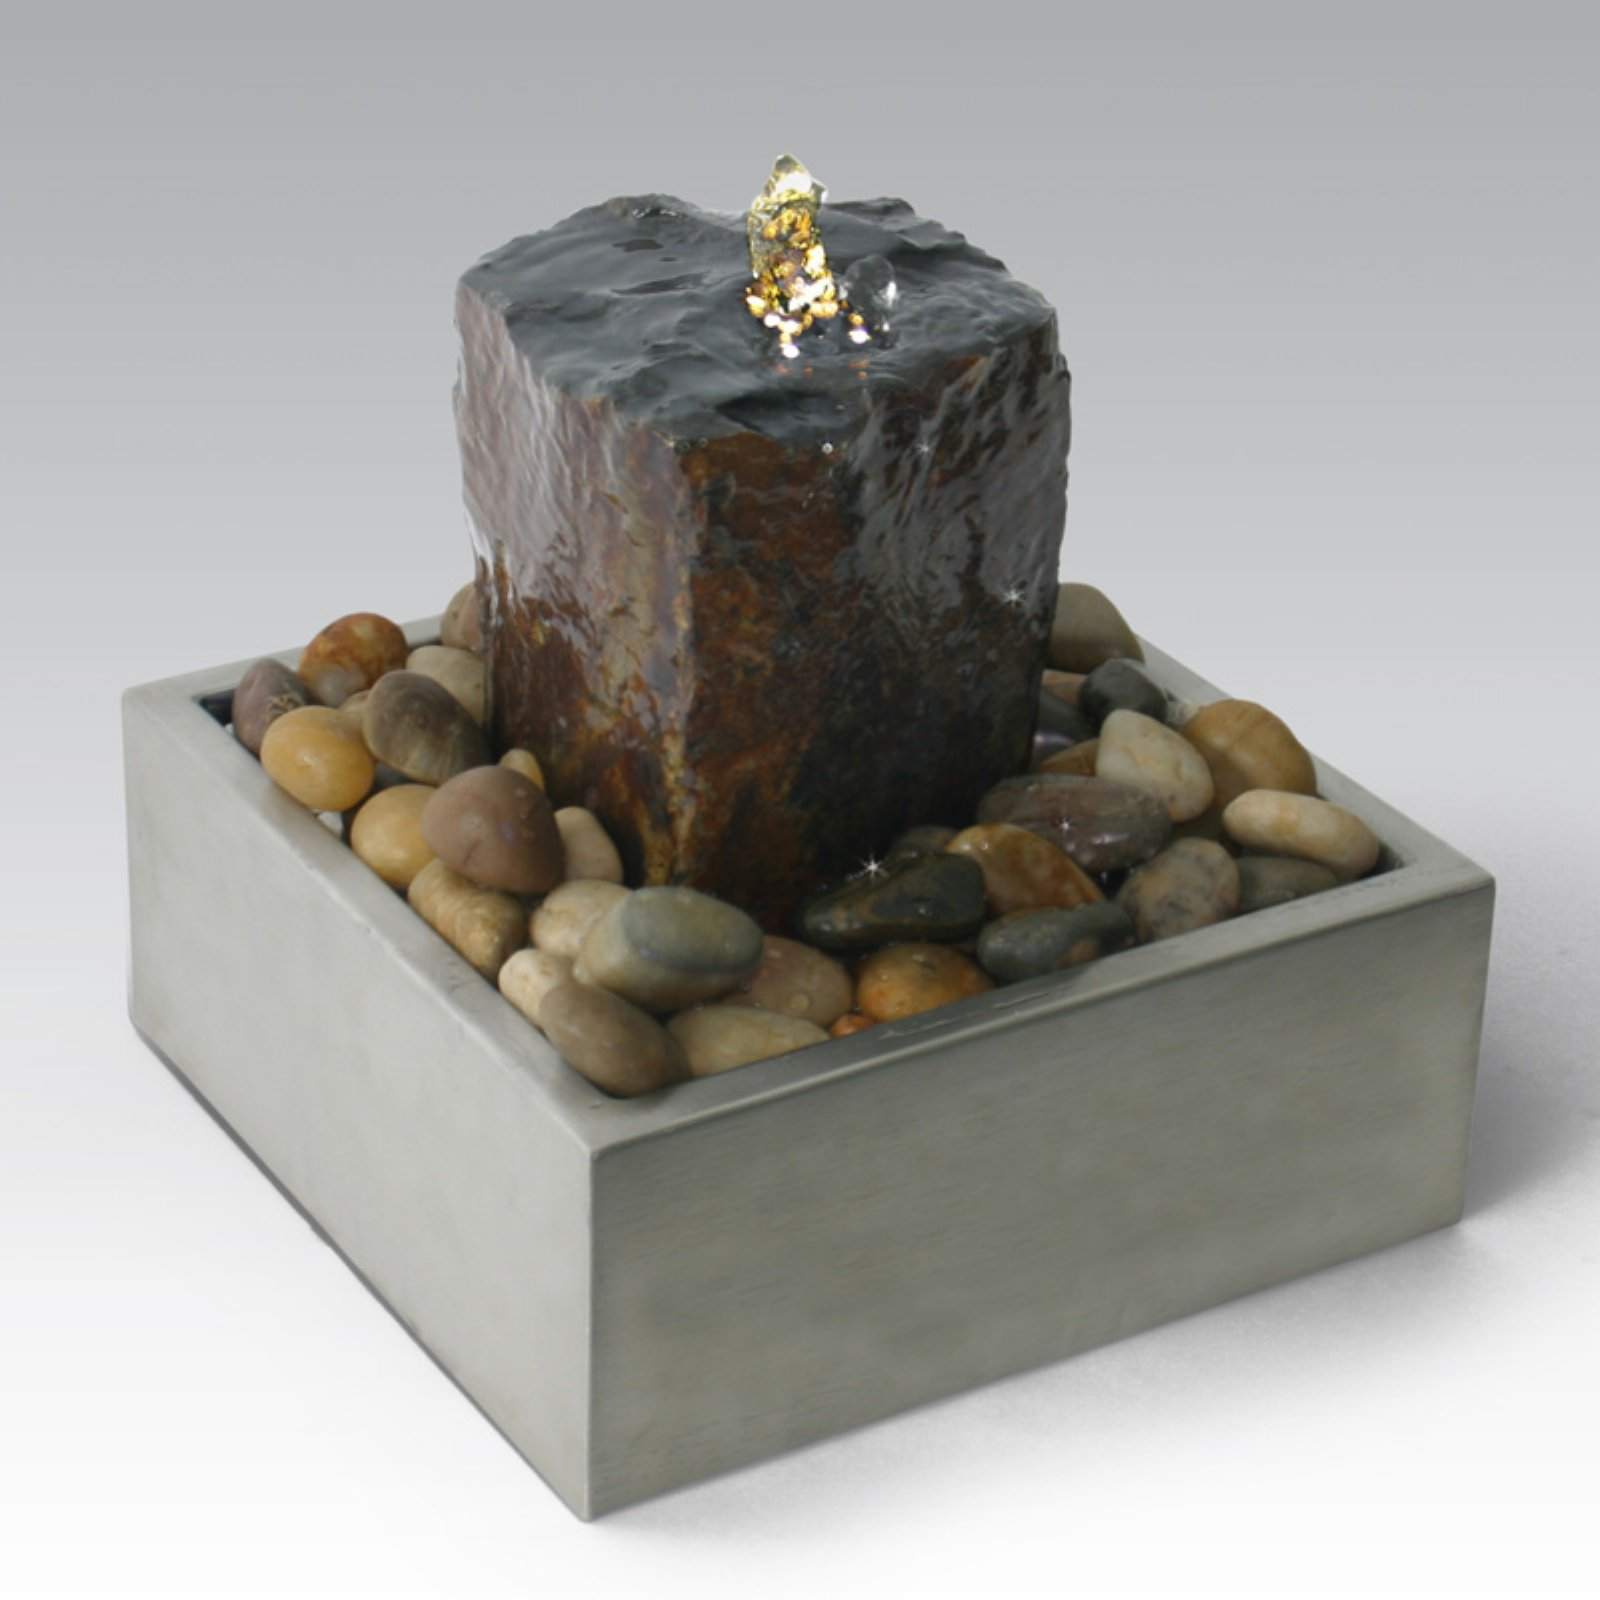 Algreen Illuminated Relaxation Outdoor Fountain with Authentic Basalt Rock Pillar and Stainless Steel Base - Gray